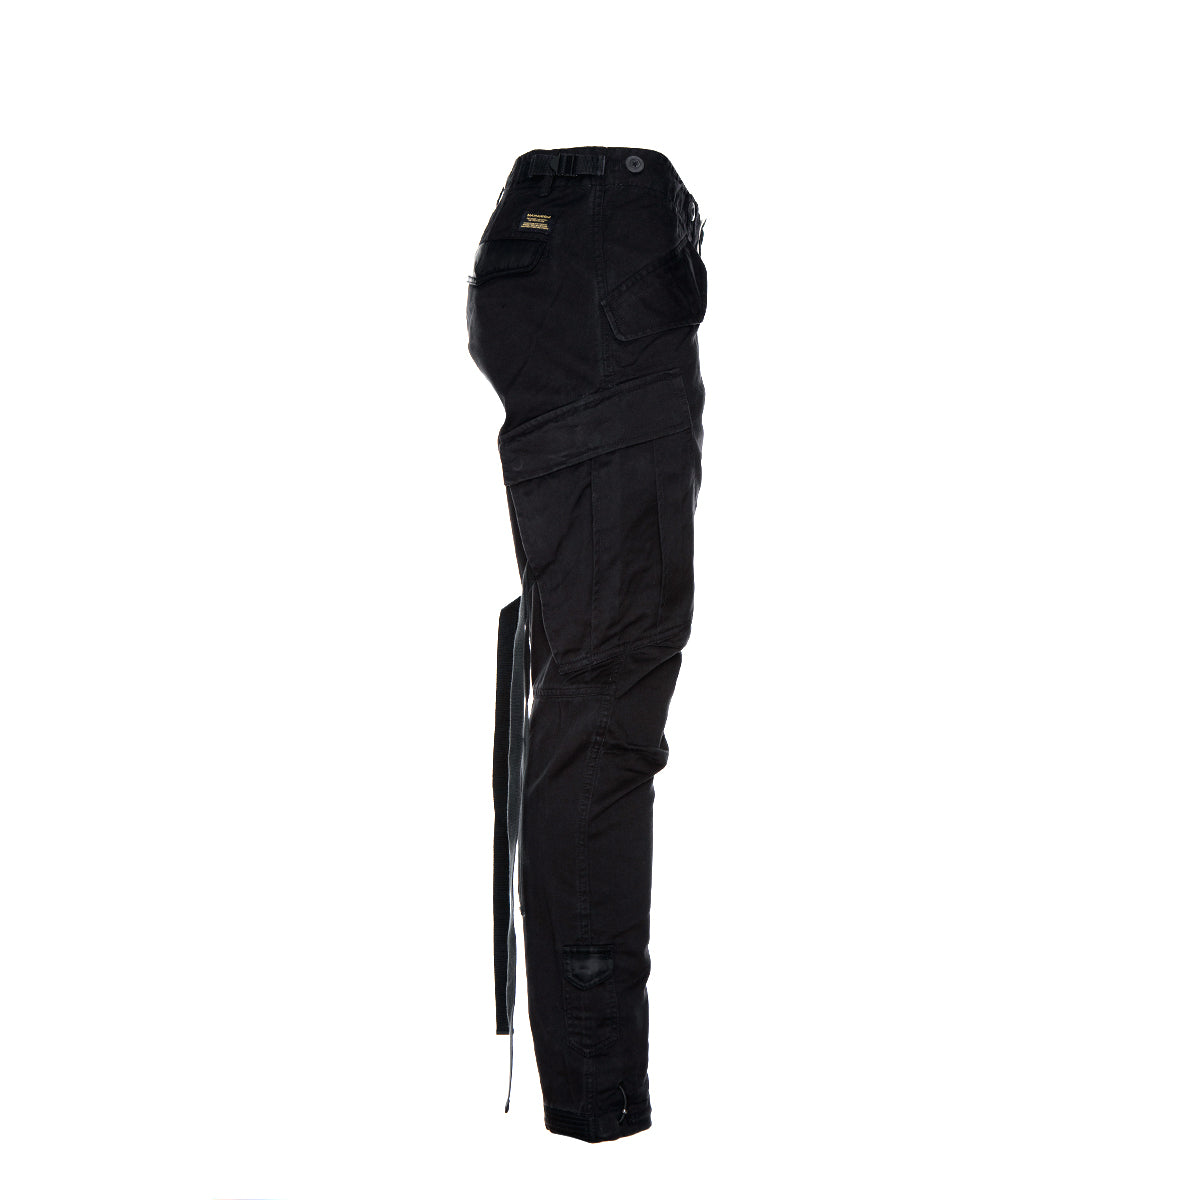 Maharishi MA65 Men's Cargo Pants Black